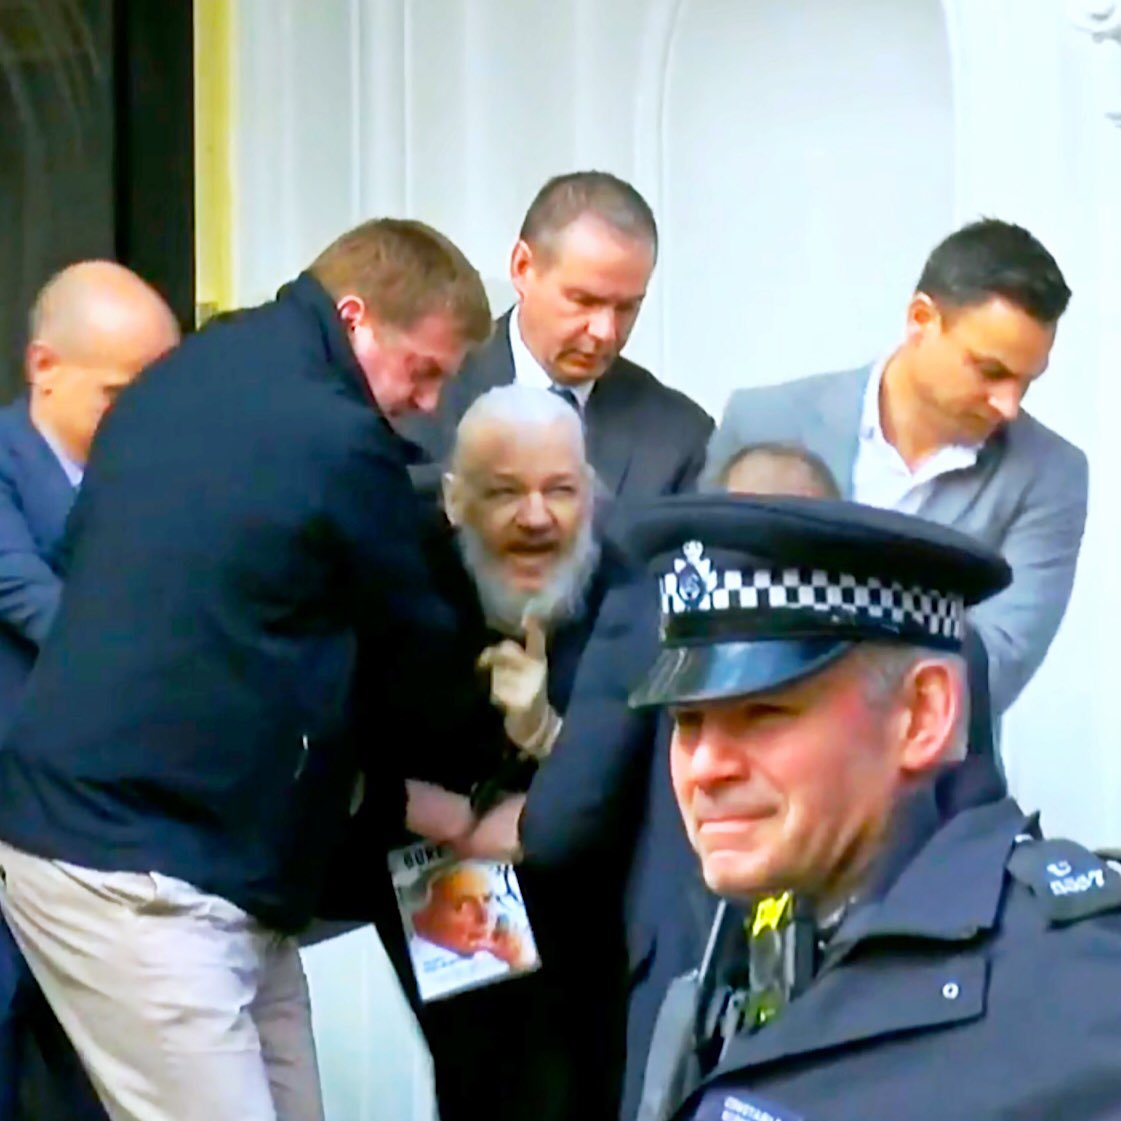 WikiLeaks founder Julian Assange arrested in London over 7 ...